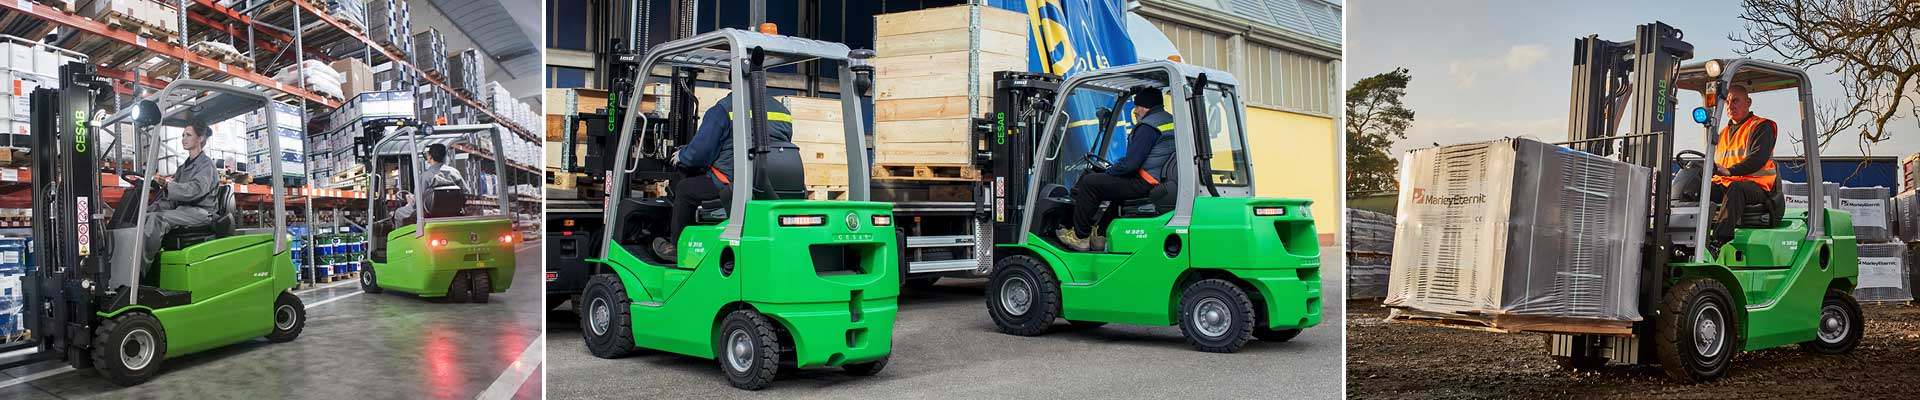 All types of forklift available for hire